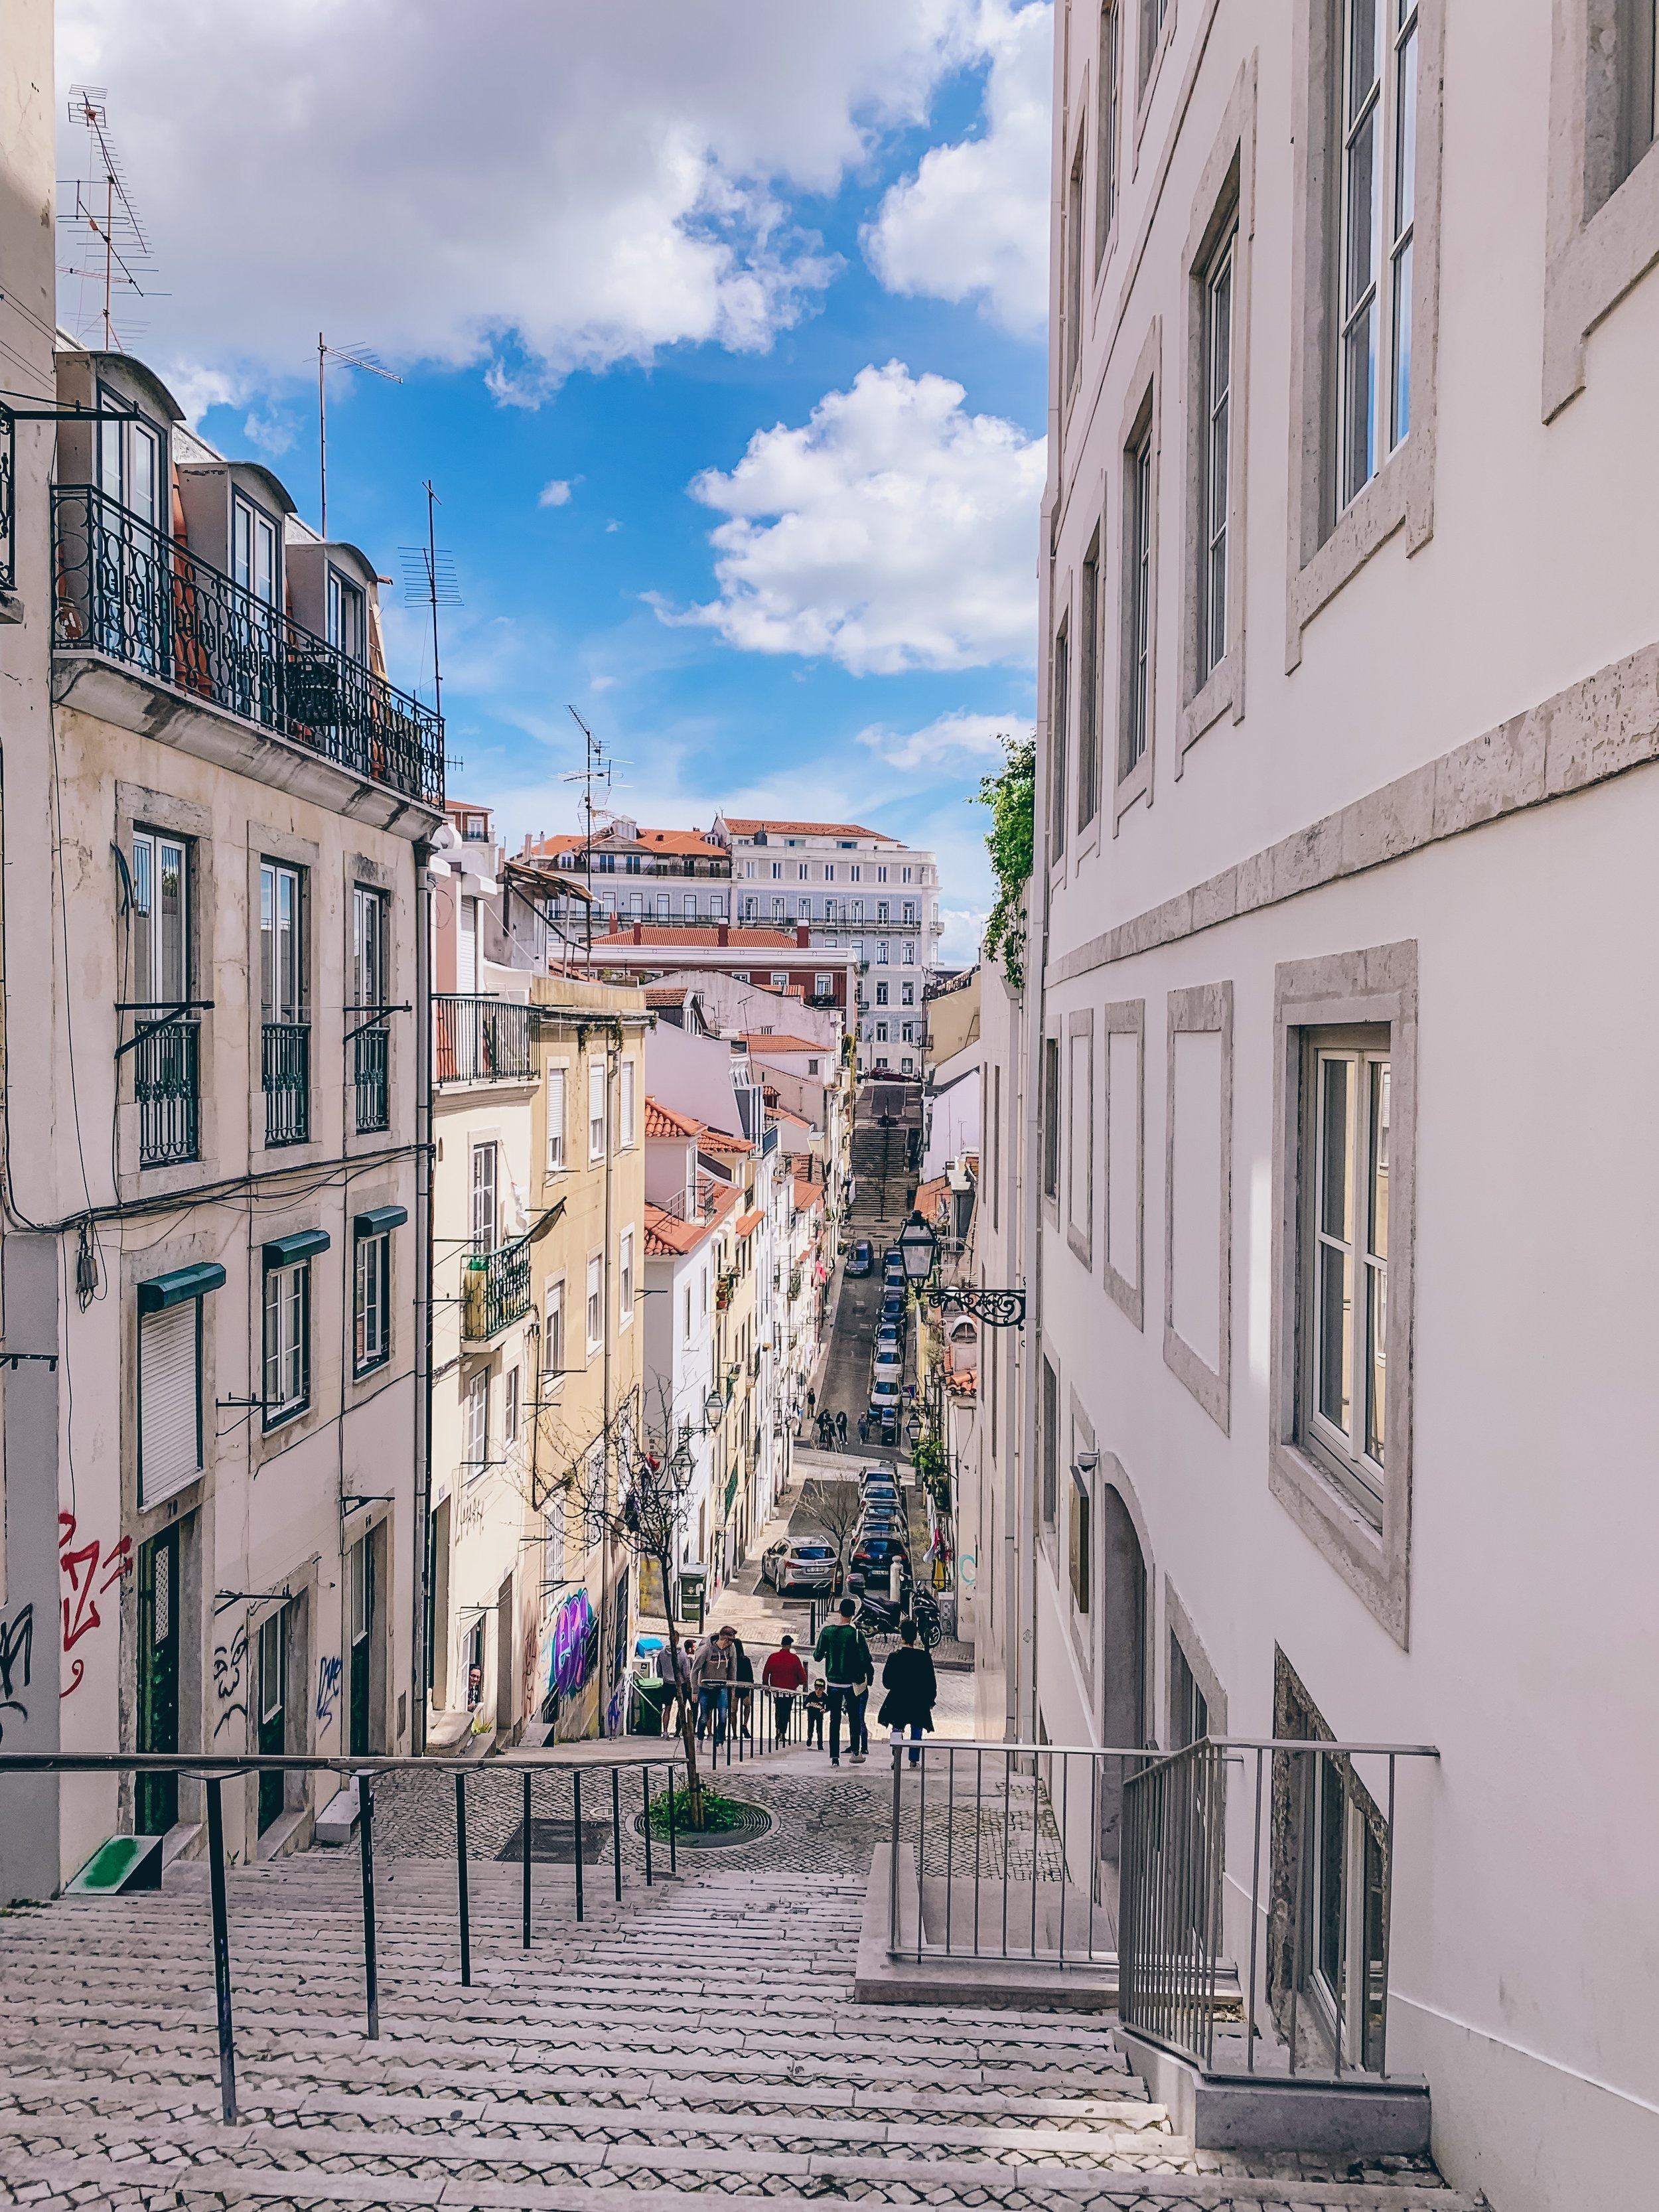 The streets of Lisbon